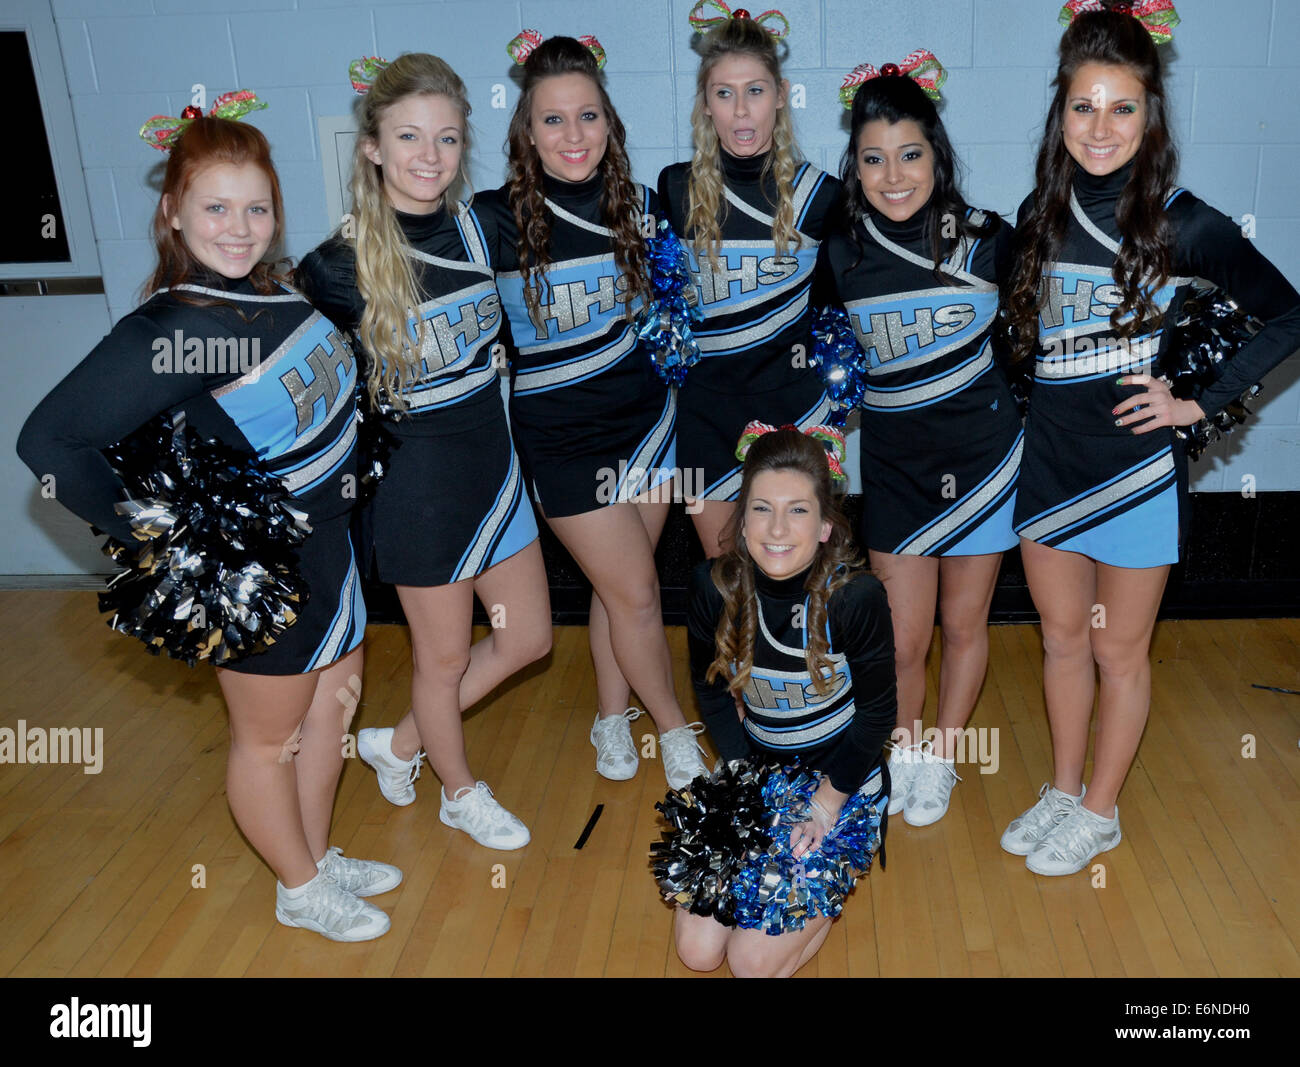 High school cheerleaders - Stock Image